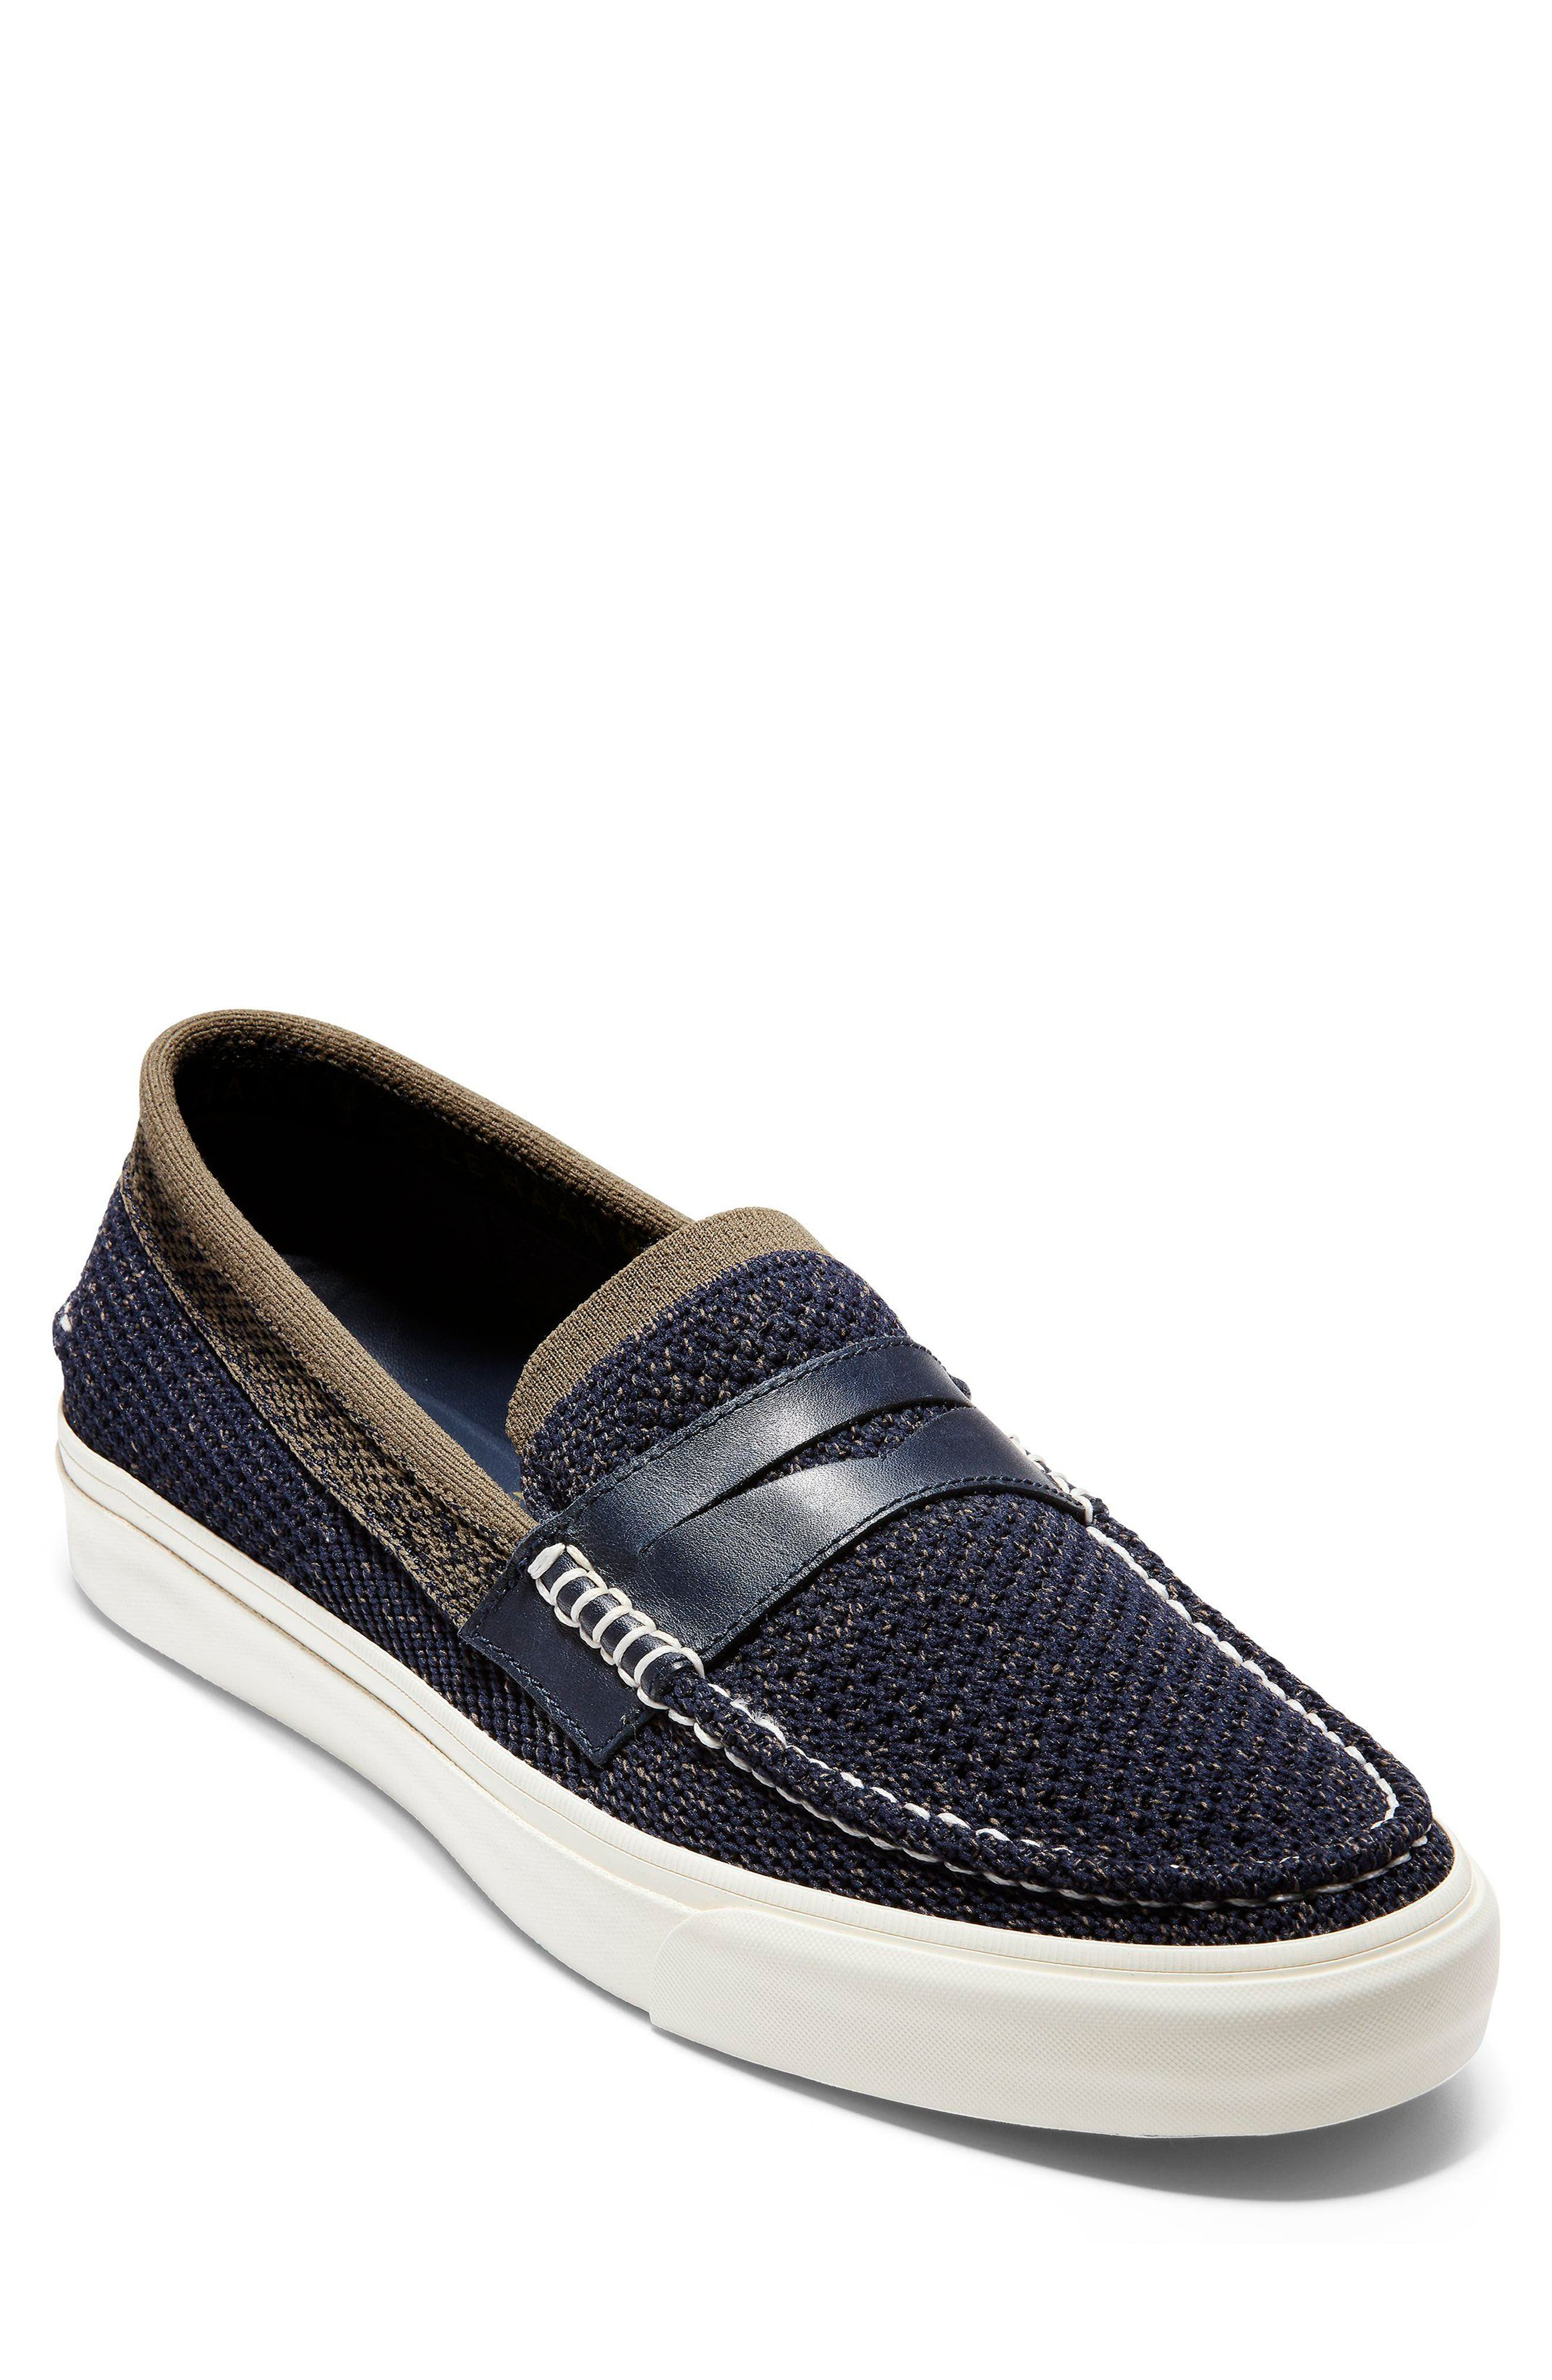 Pinch Stitch LX Stitchlite<sup>™</sup> Penny Loafer,                             Main thumbnail 1, color,                             NAVY/ MOREL